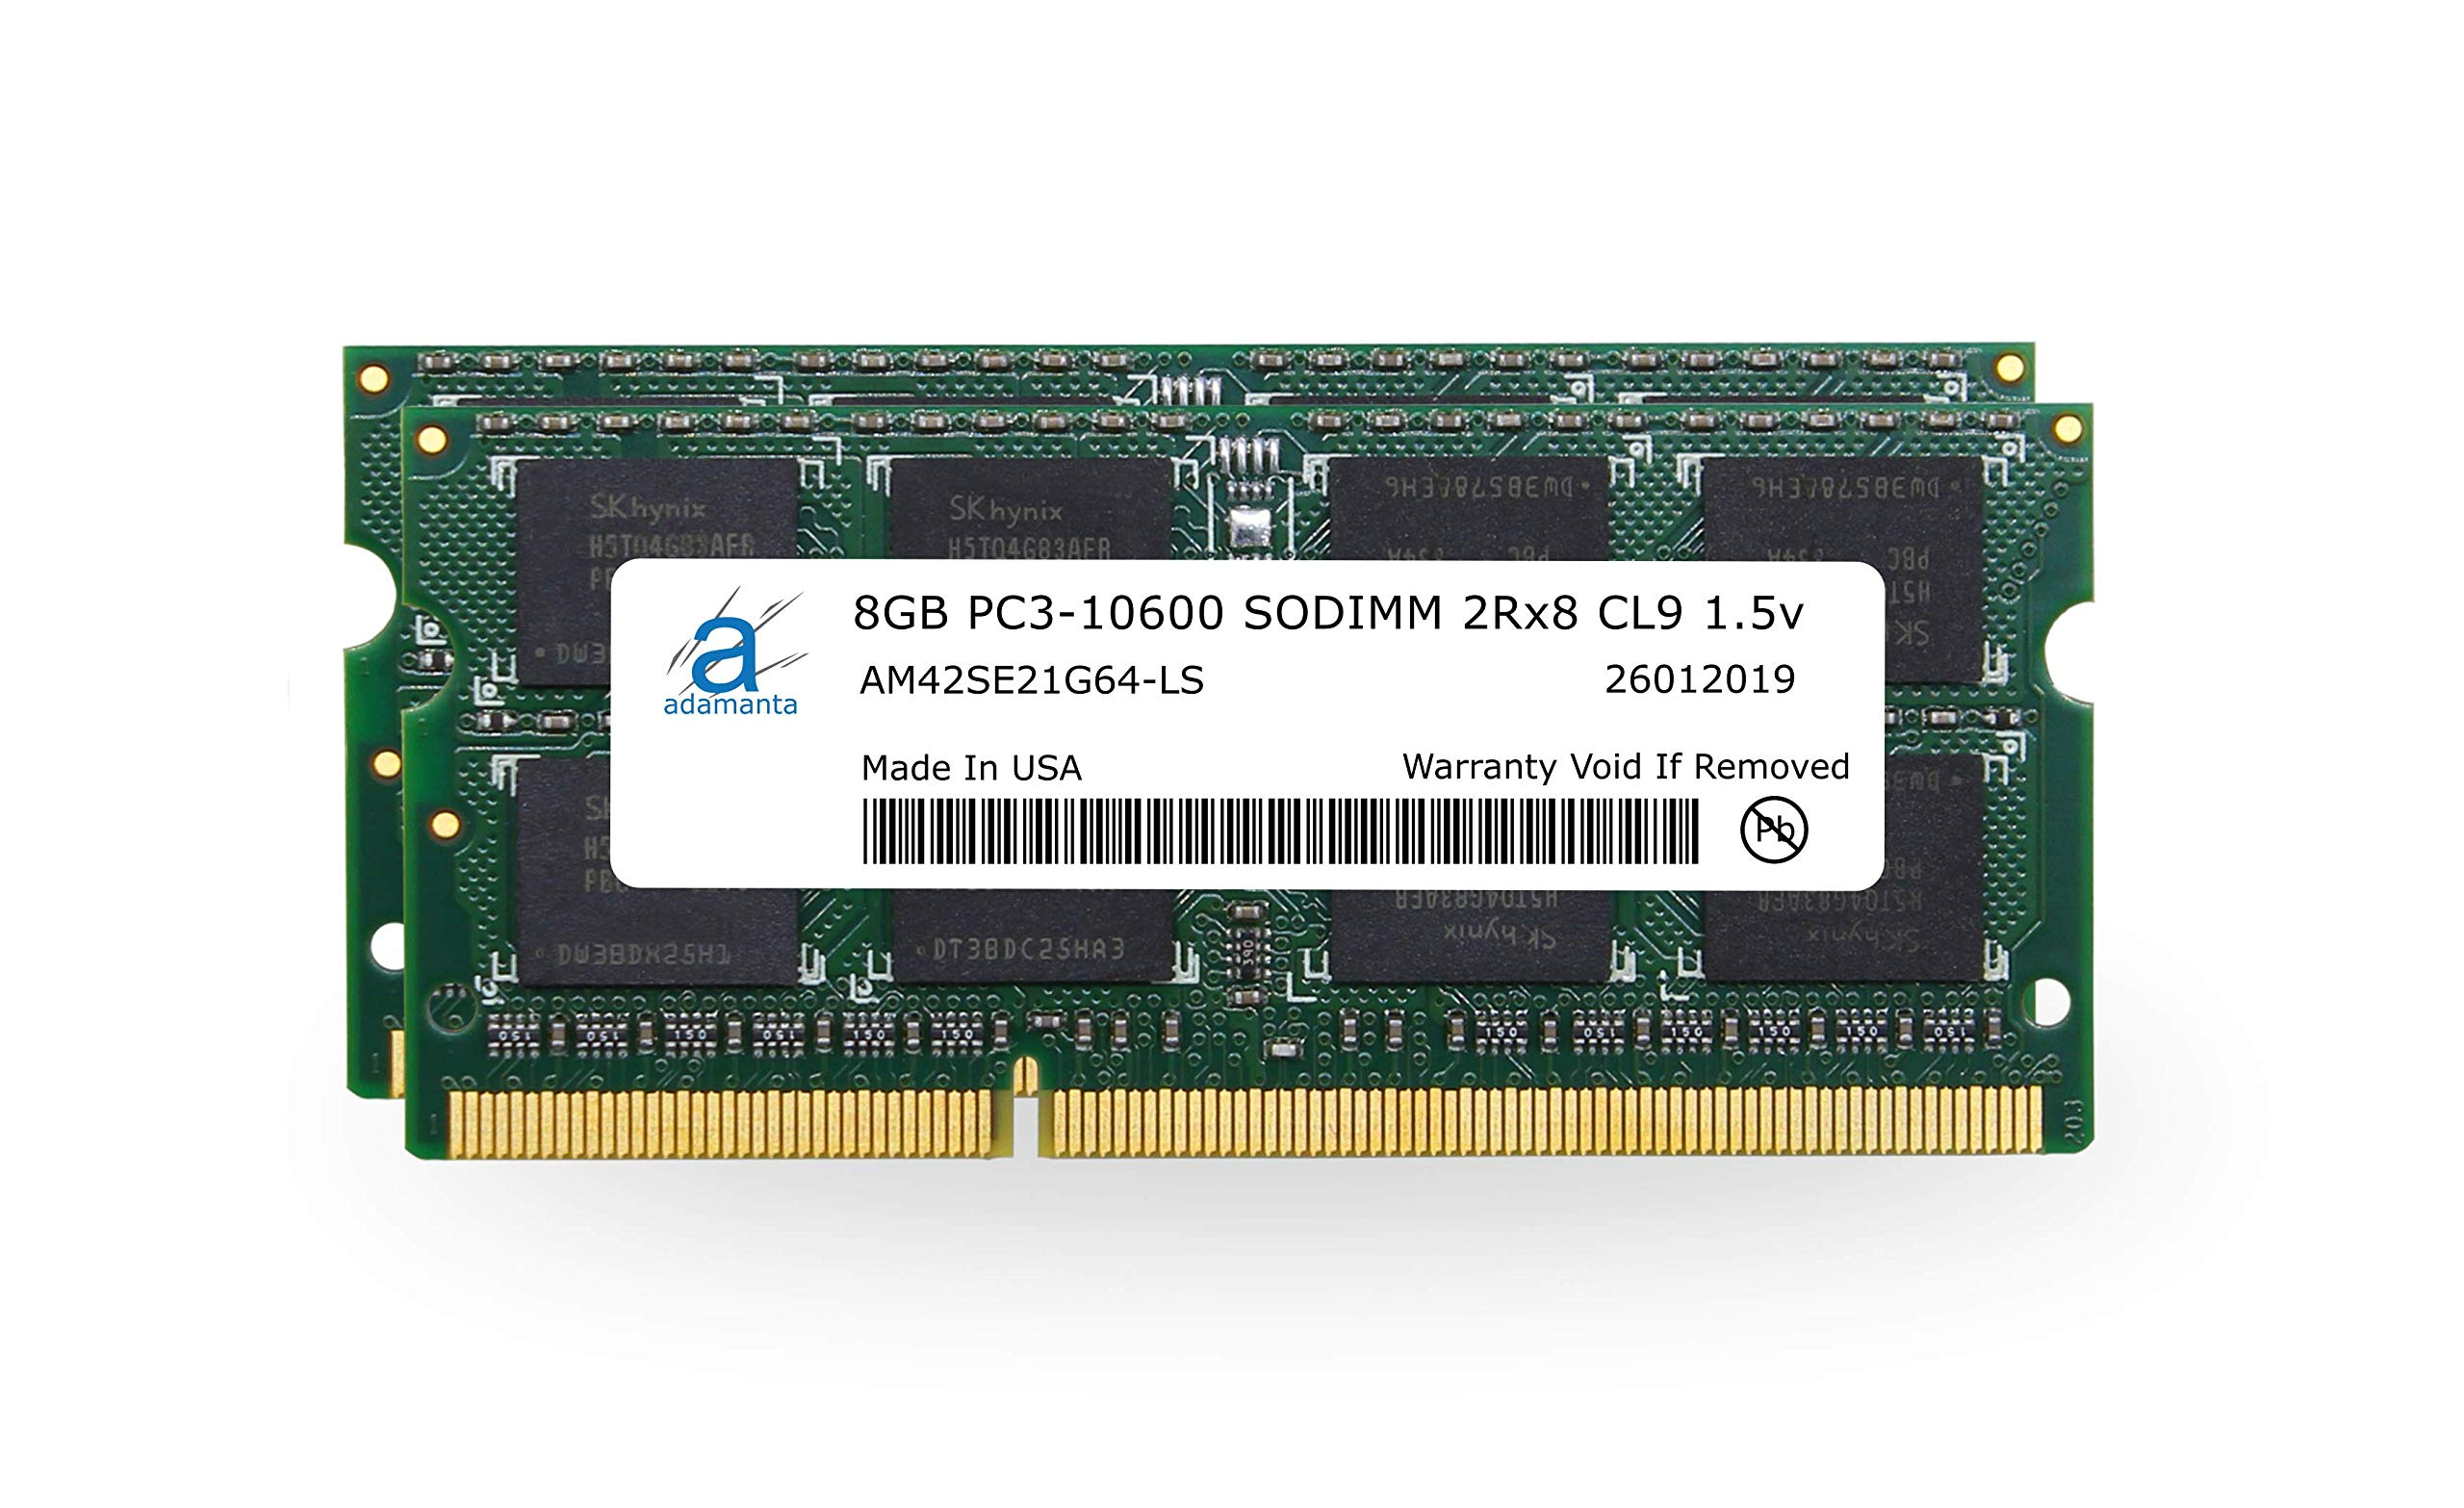 Memoria Ram 16gb Adamanta (2x8gb) Upgrade Compatible Para Apple iMac Macbook Pro Mac Mini Ddr3 1333mhz Pc3-10600 Sodimm